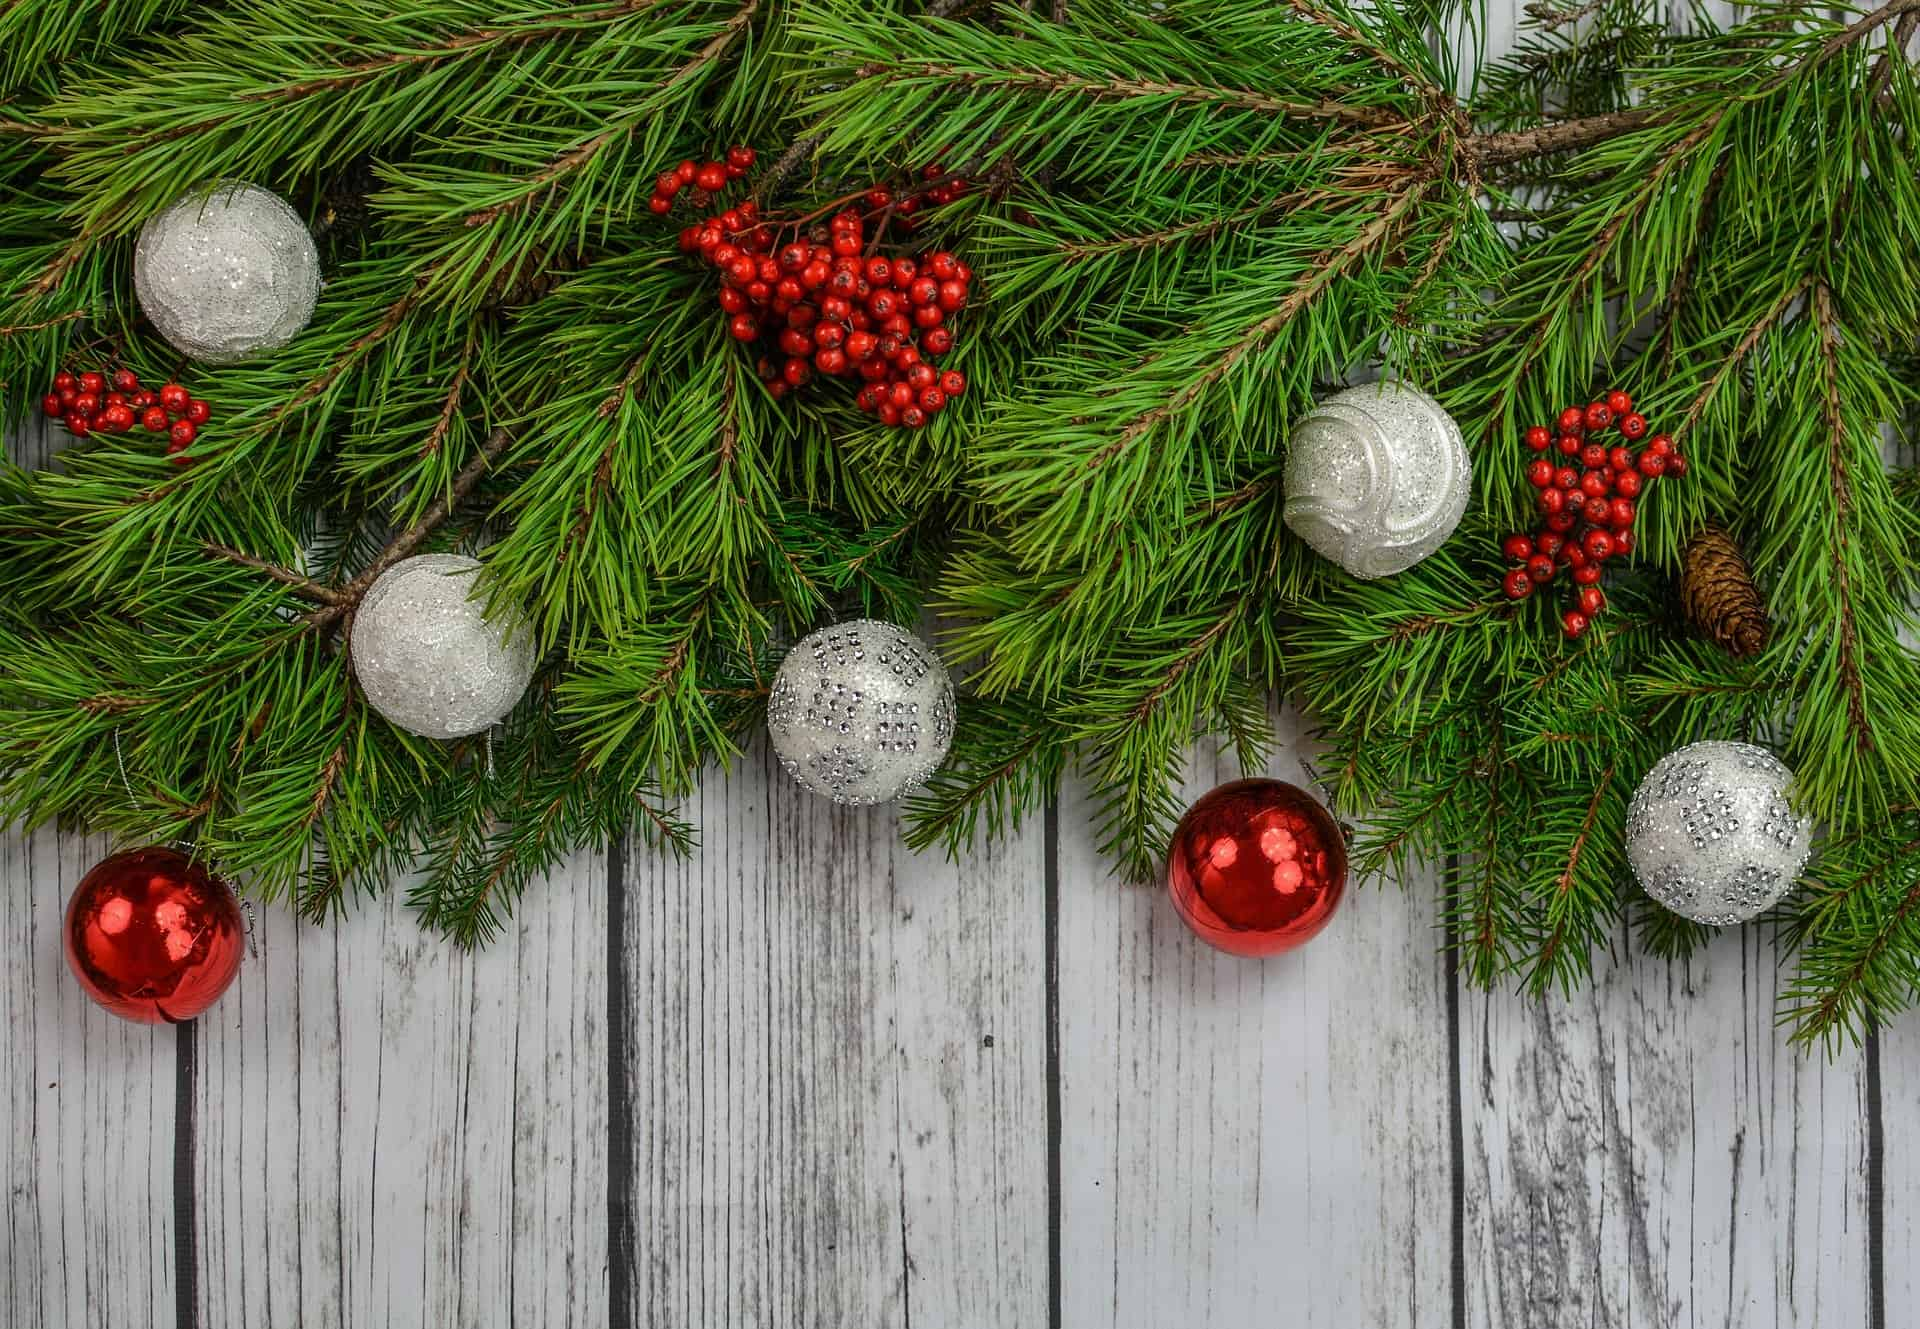 How to Get Your Home Fire Ready in Time for Christmas